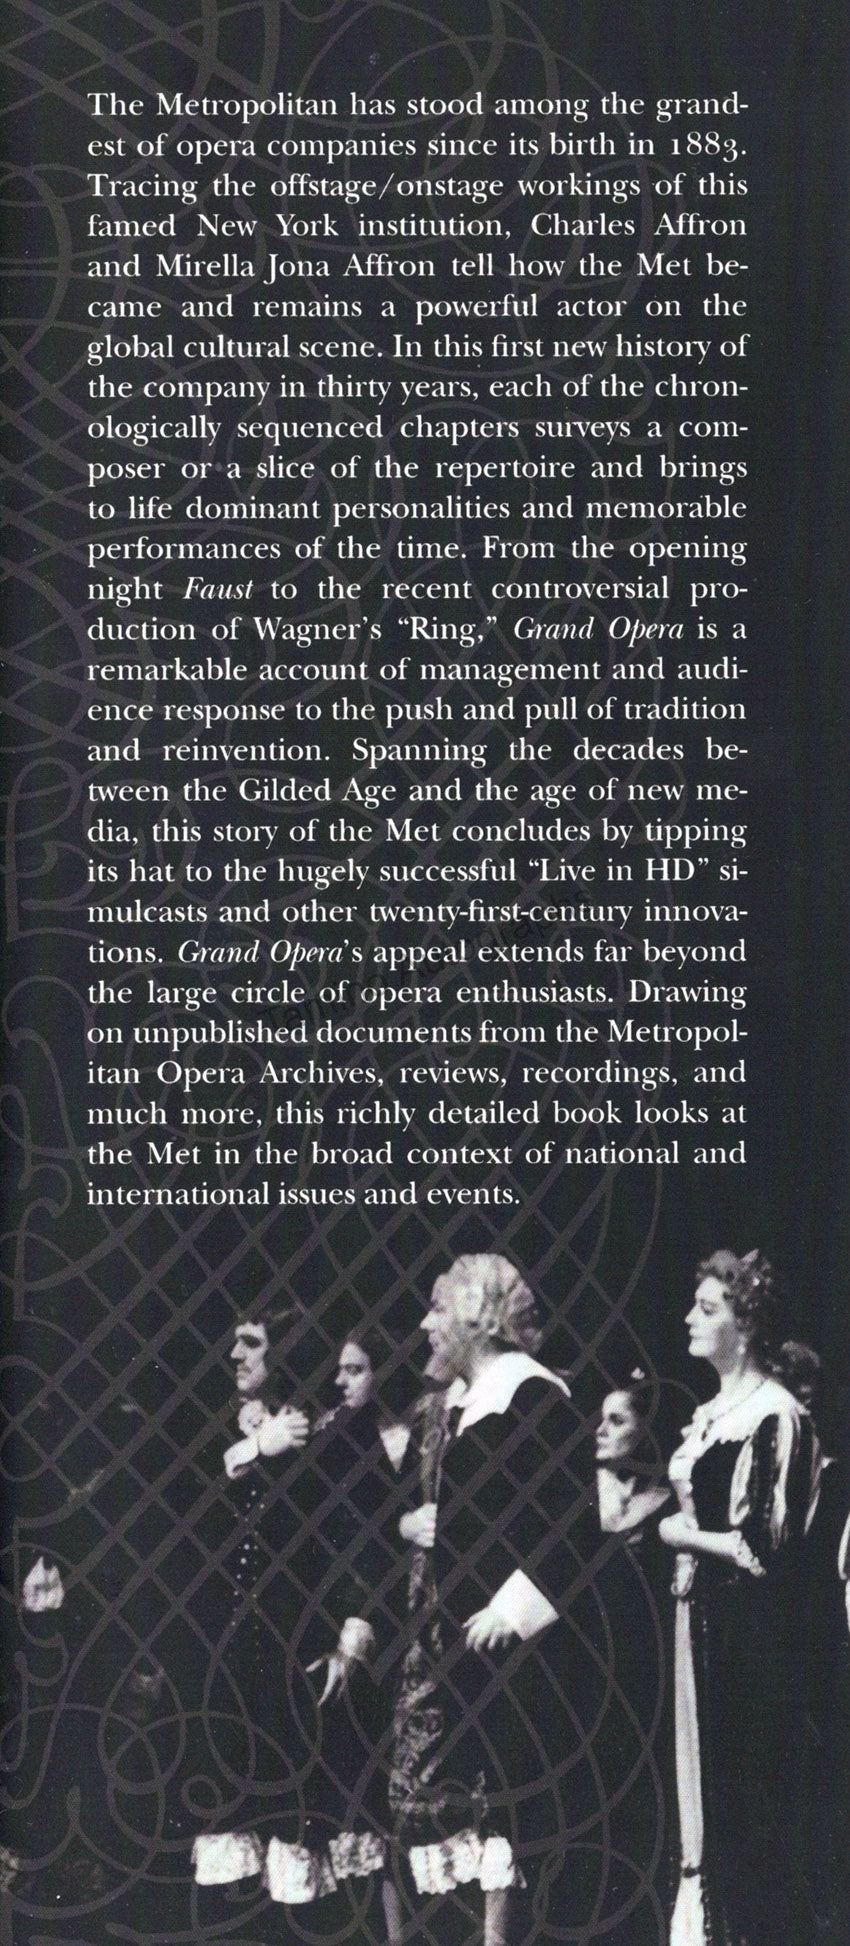 Grand Opera - The Story of the Met by Charles and Mirella Affron - tab